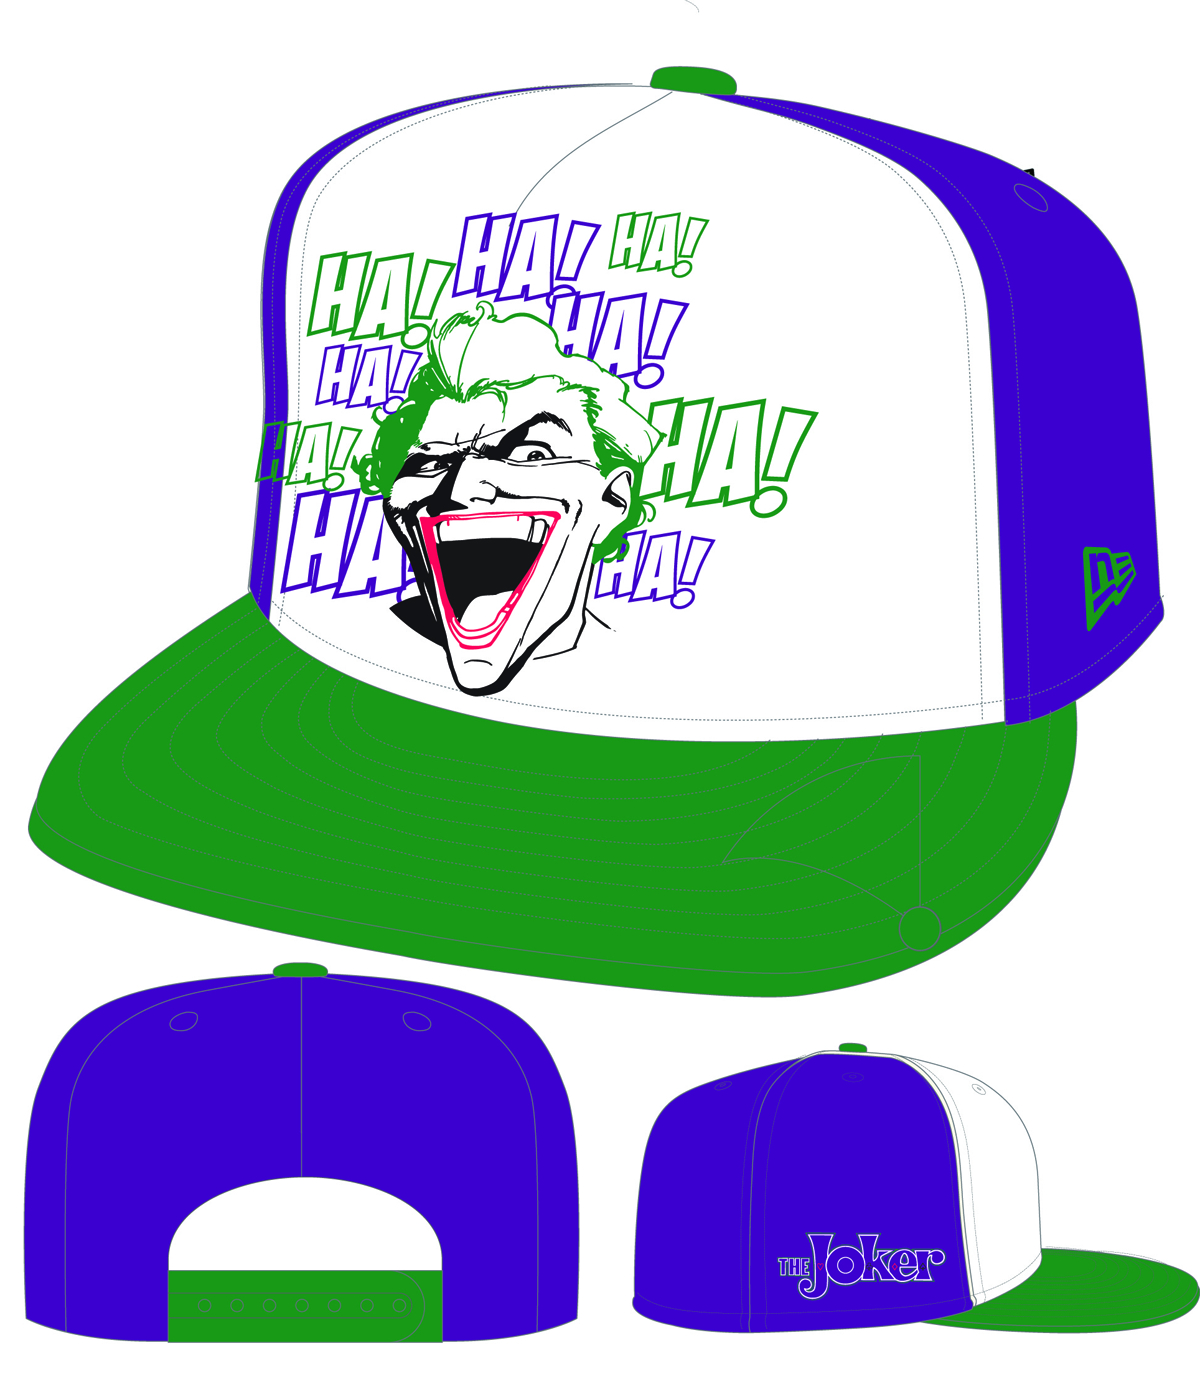 HERO NEON SIGN JOKER LOGO PX SNAPBACK CAP